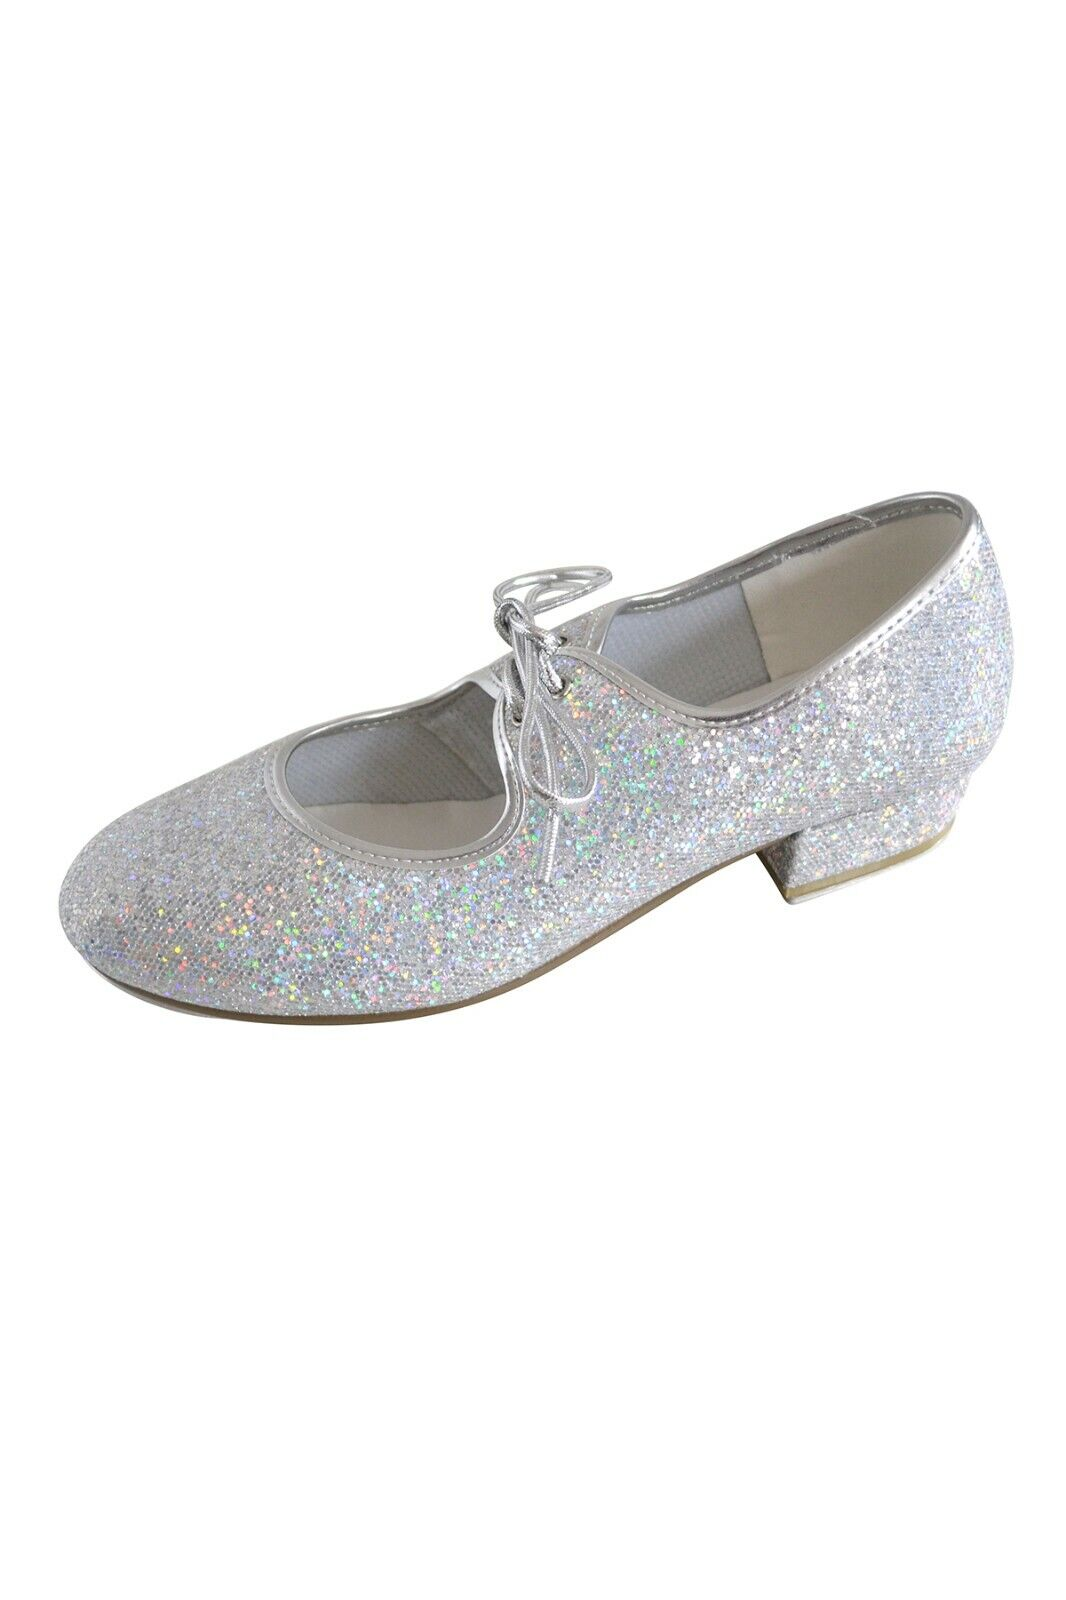 Roch Valley Low Heel Silver Hologram Tap shoes in child sizes